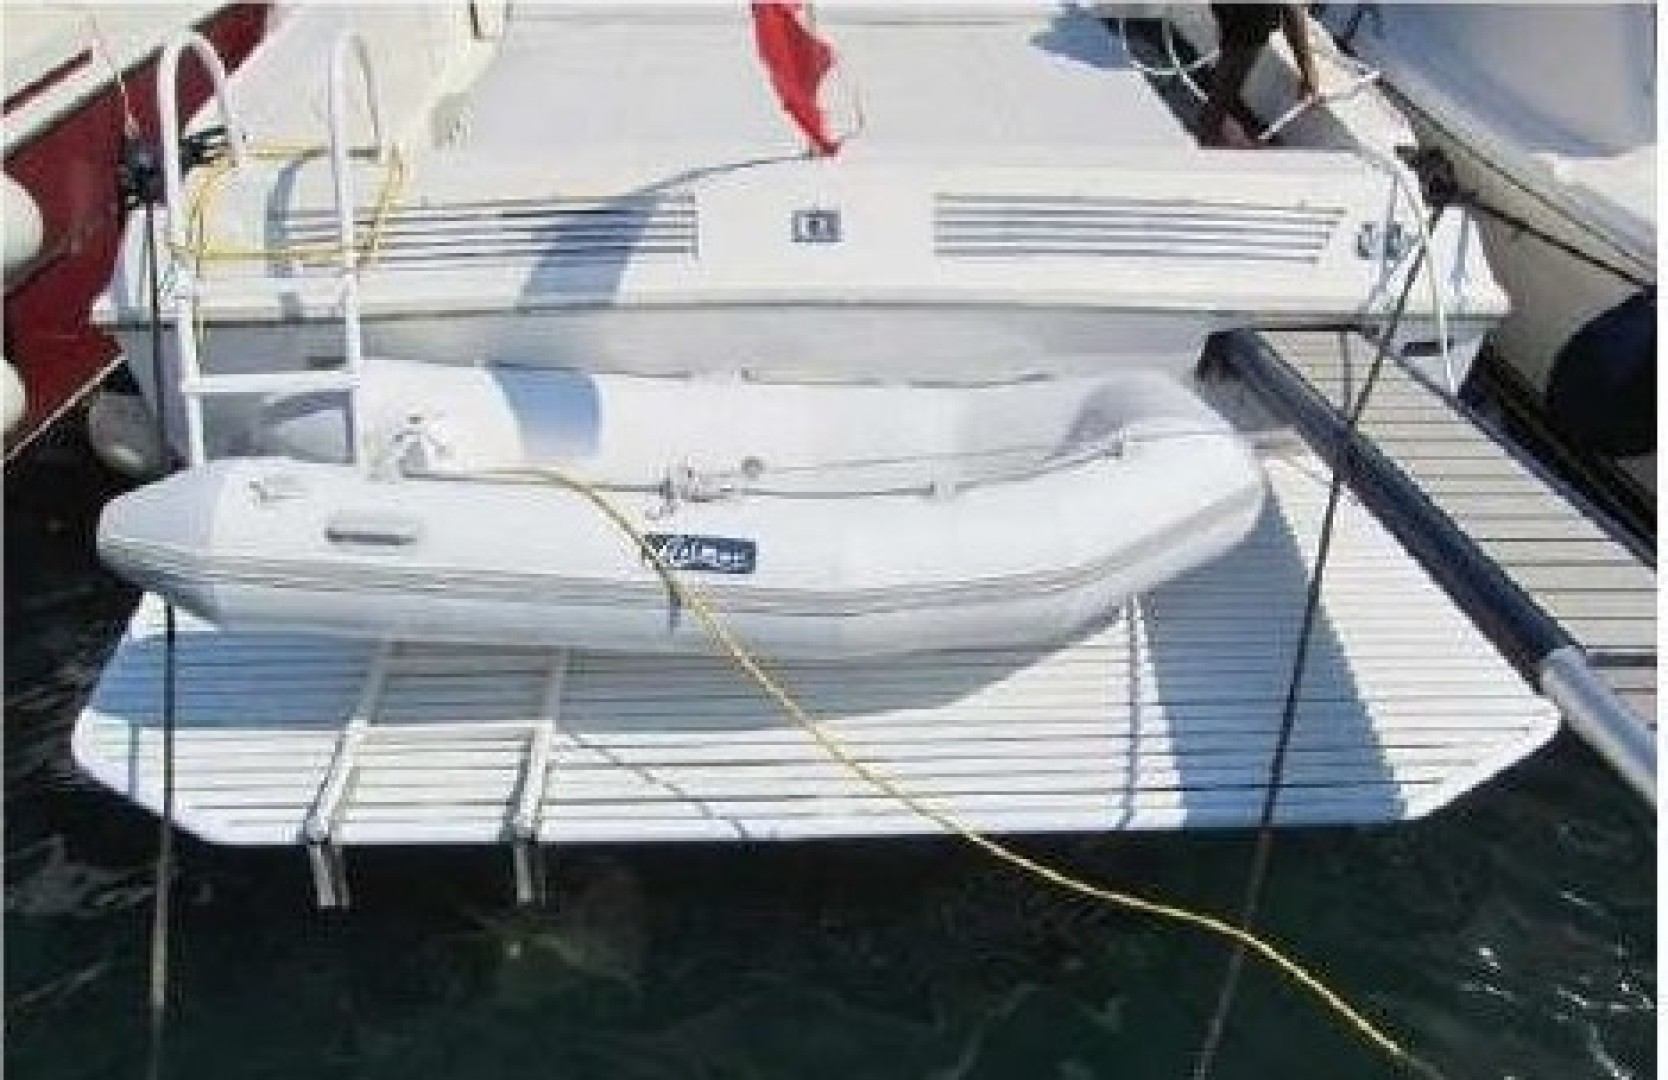 53ft Magnum Yacht For Sale